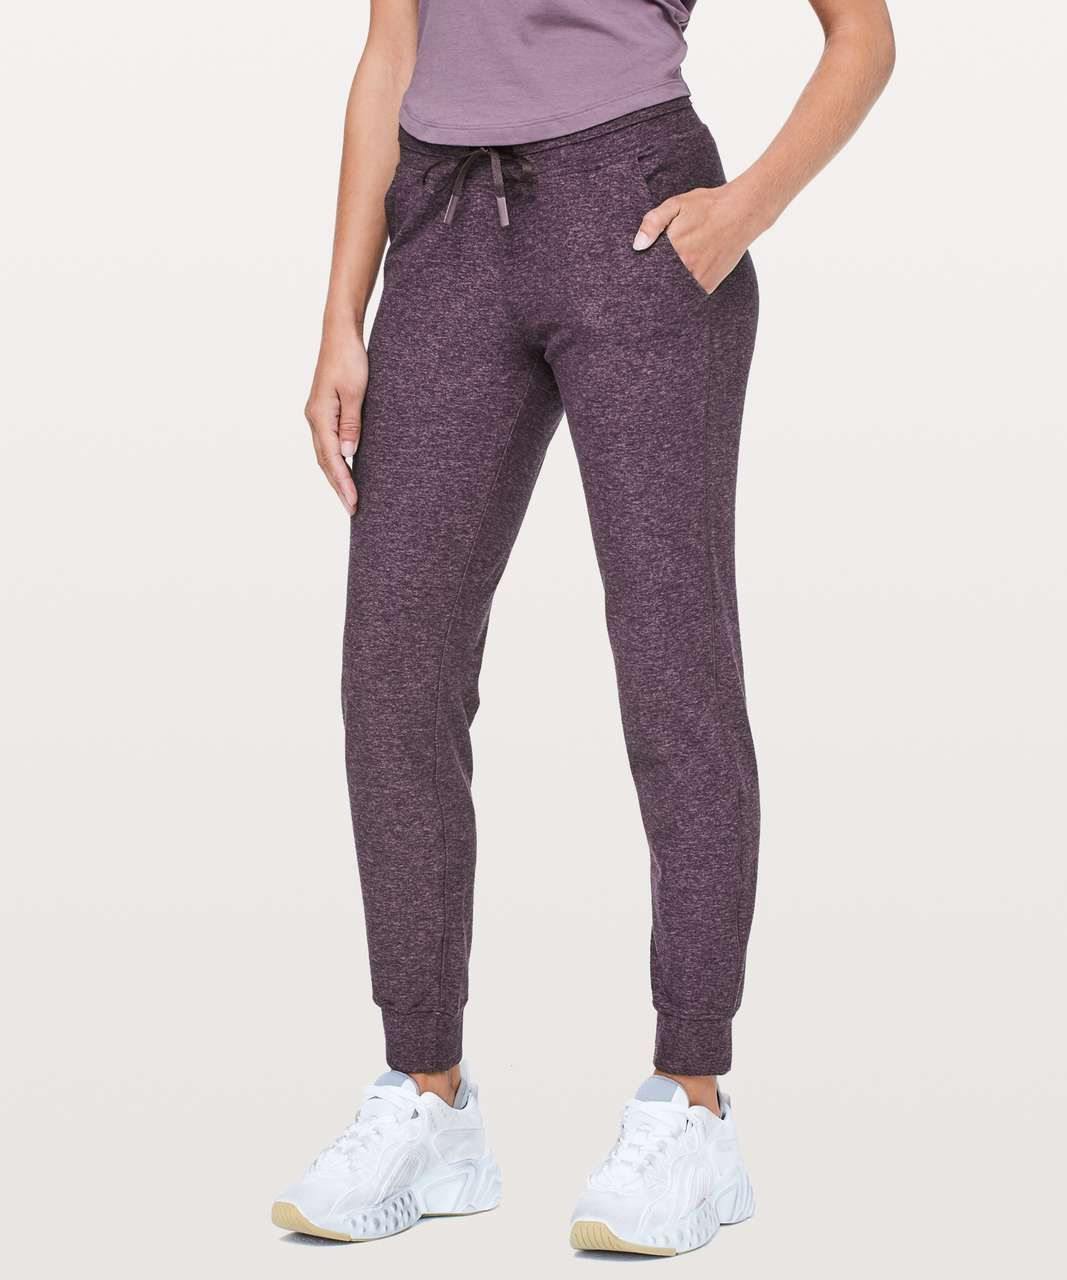 289d3dcba8 Color: Heathered Arctic Plum. Warm up, cool down, or kick back in these  cozy, sweat-wicking joggers.Rulu™Stretchy, naturally breathable Rulu™  fabric is ...